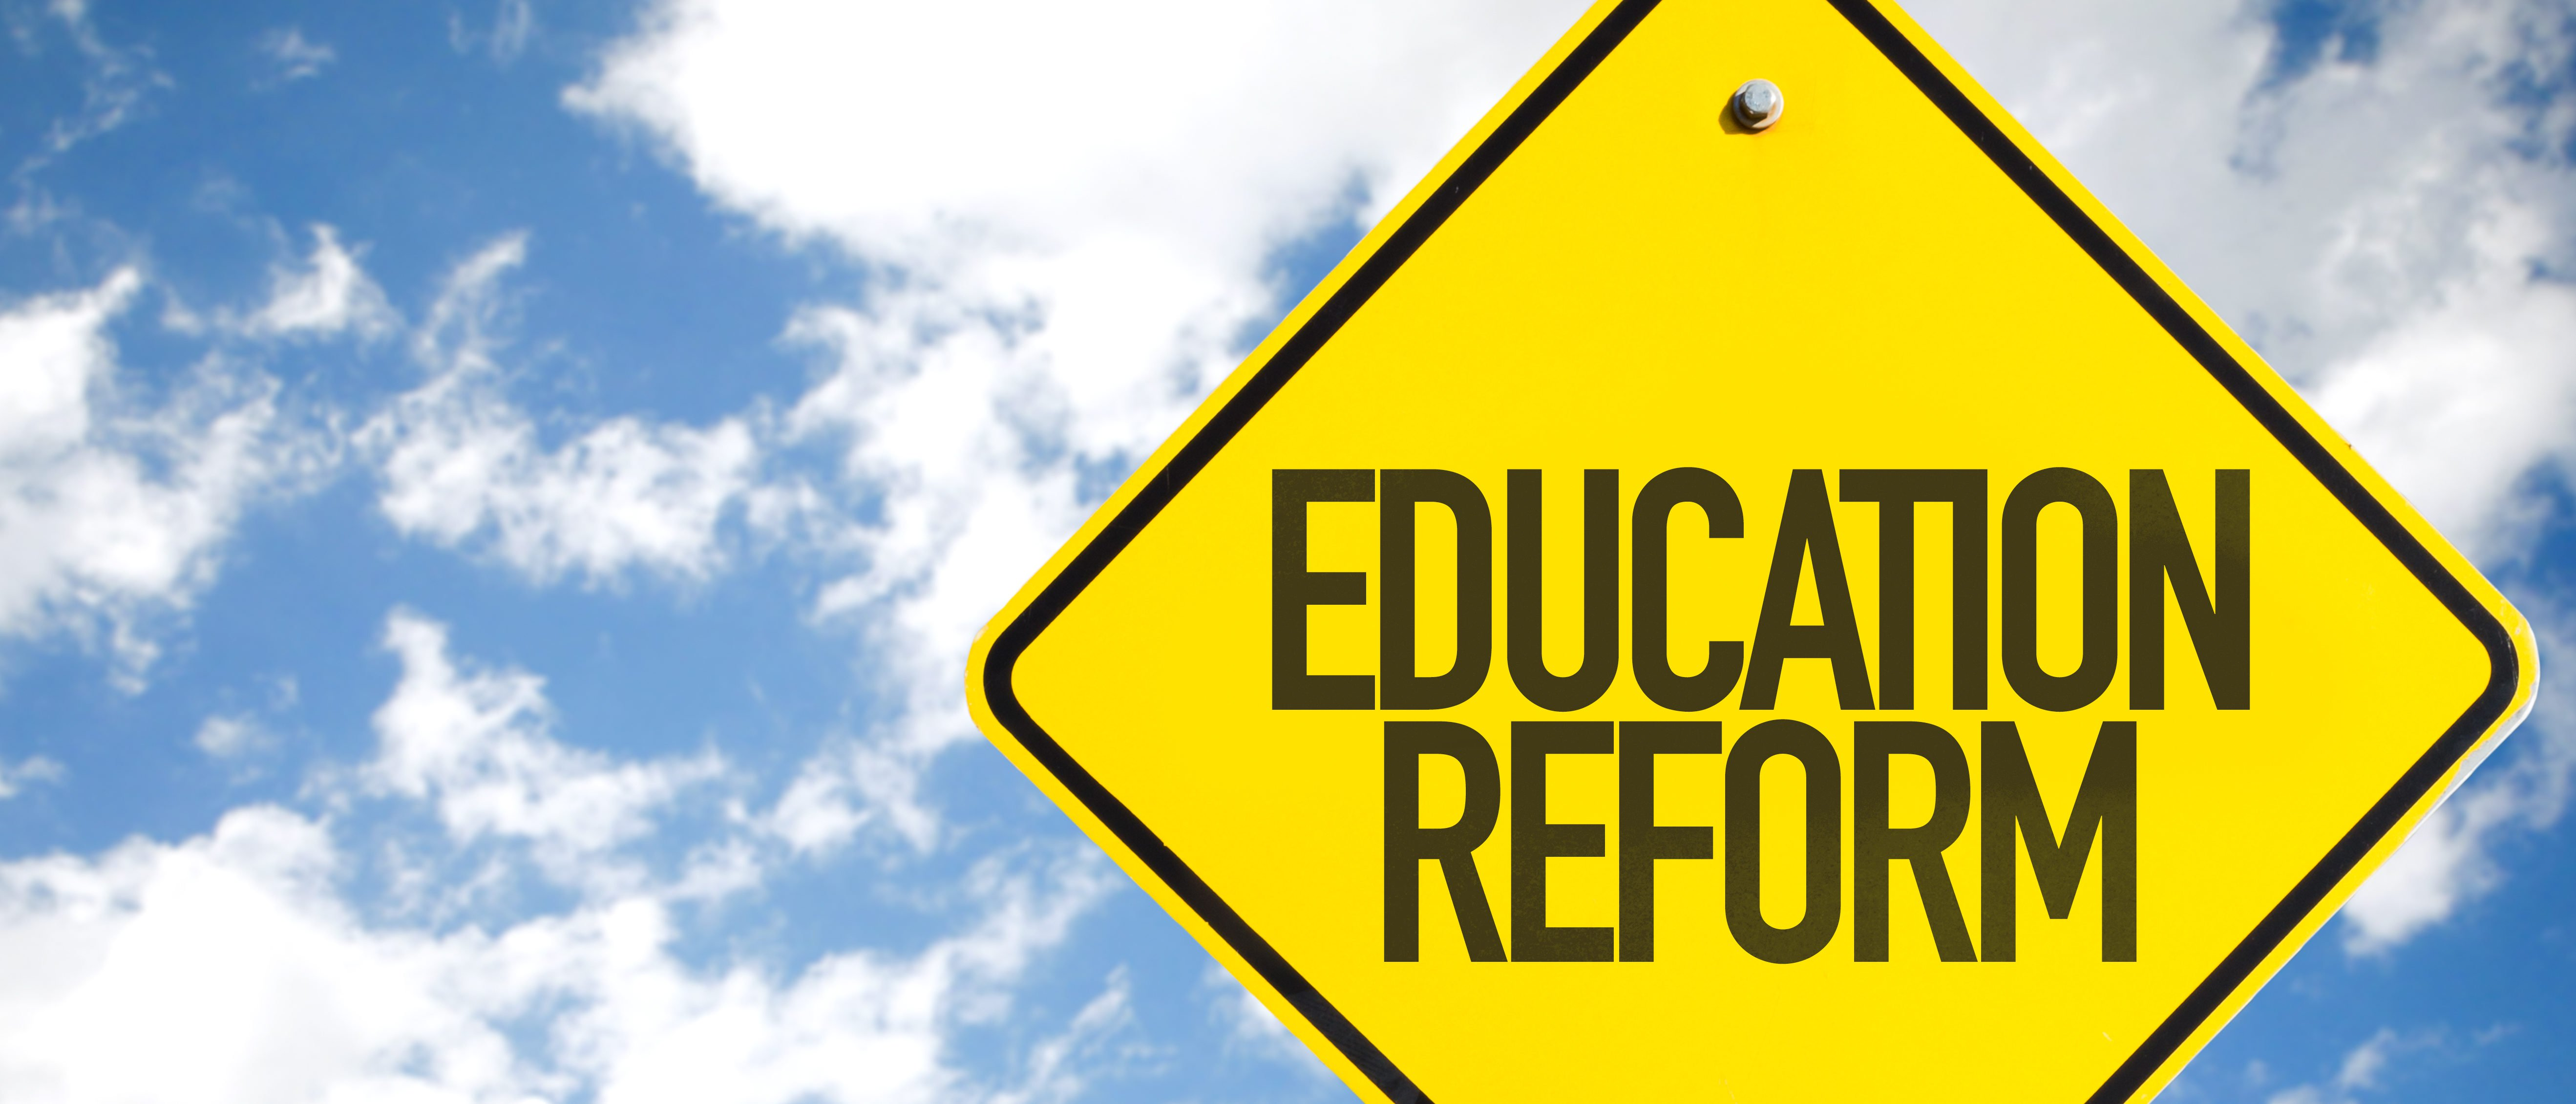 Education-Reform-sign-with-sky-background-e1518460439664.jpg (5274×2260)